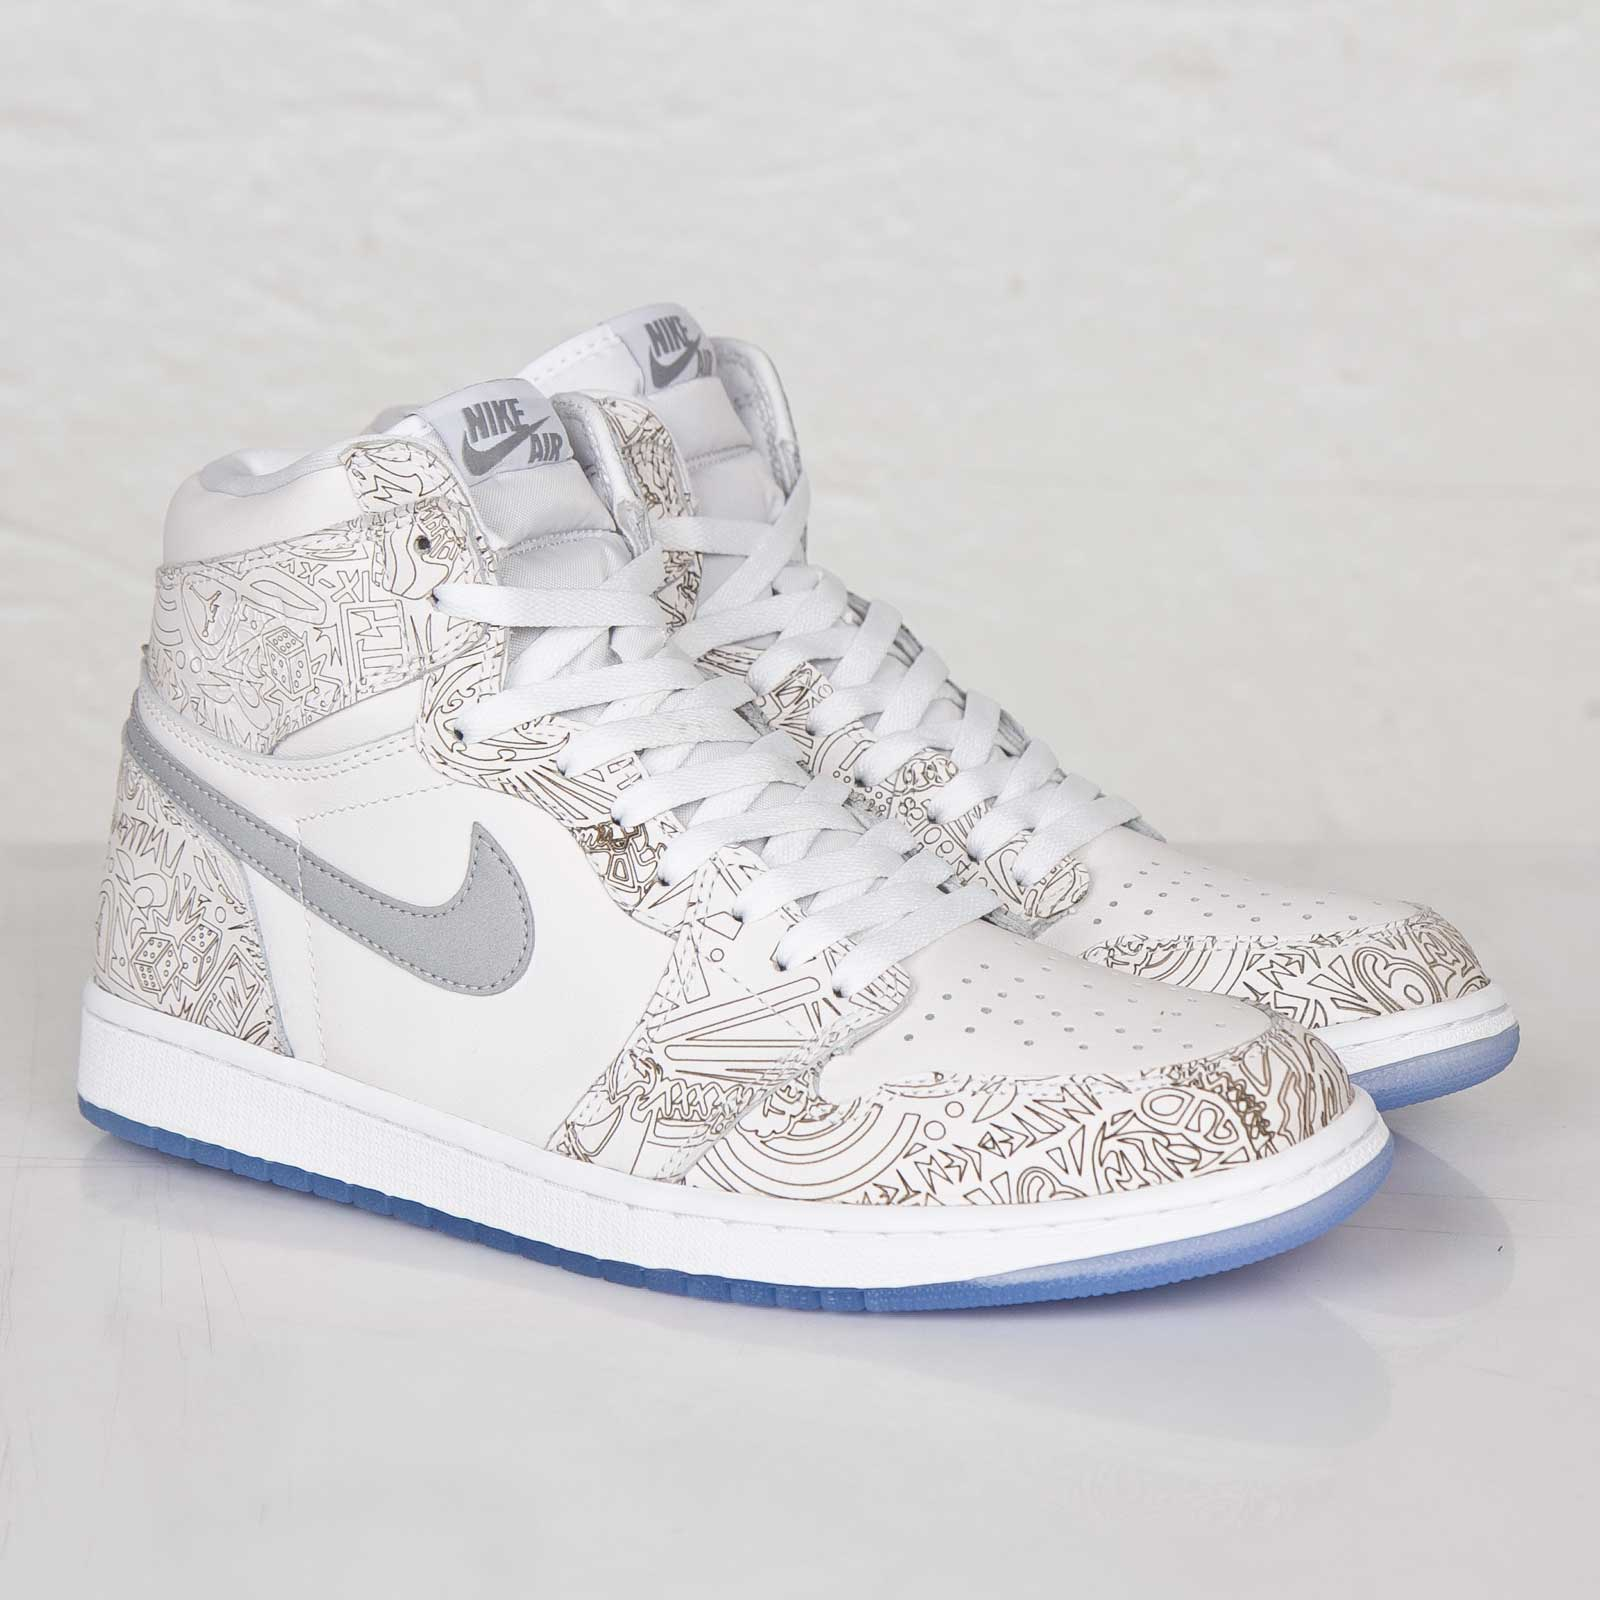 low priced 47d89 f01af Jordan Brand Air Jordan 1 Retro Hi OG Laser